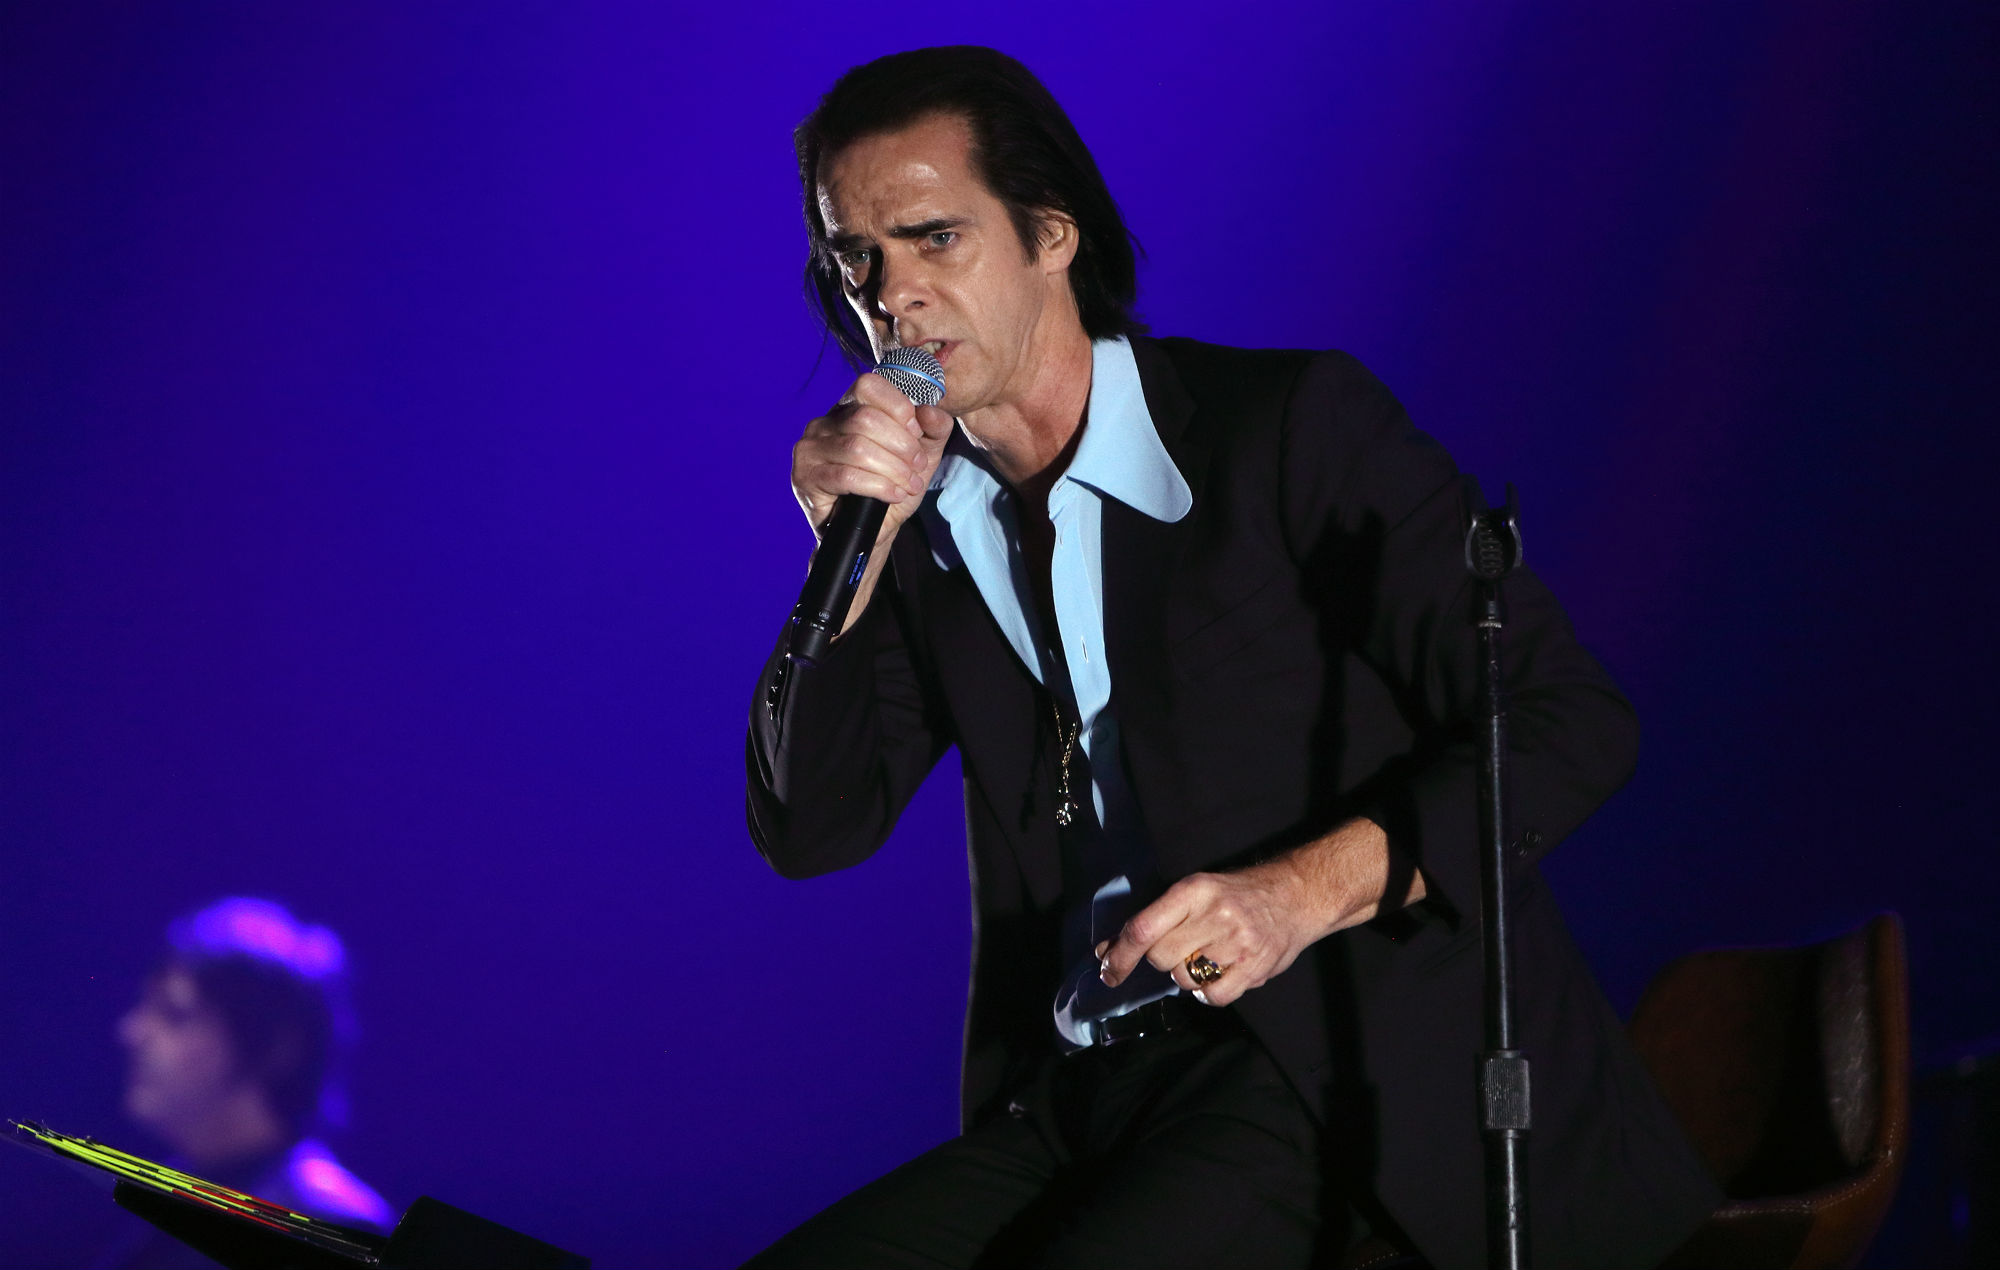 Nick Cave opens up about emotional Manchester show